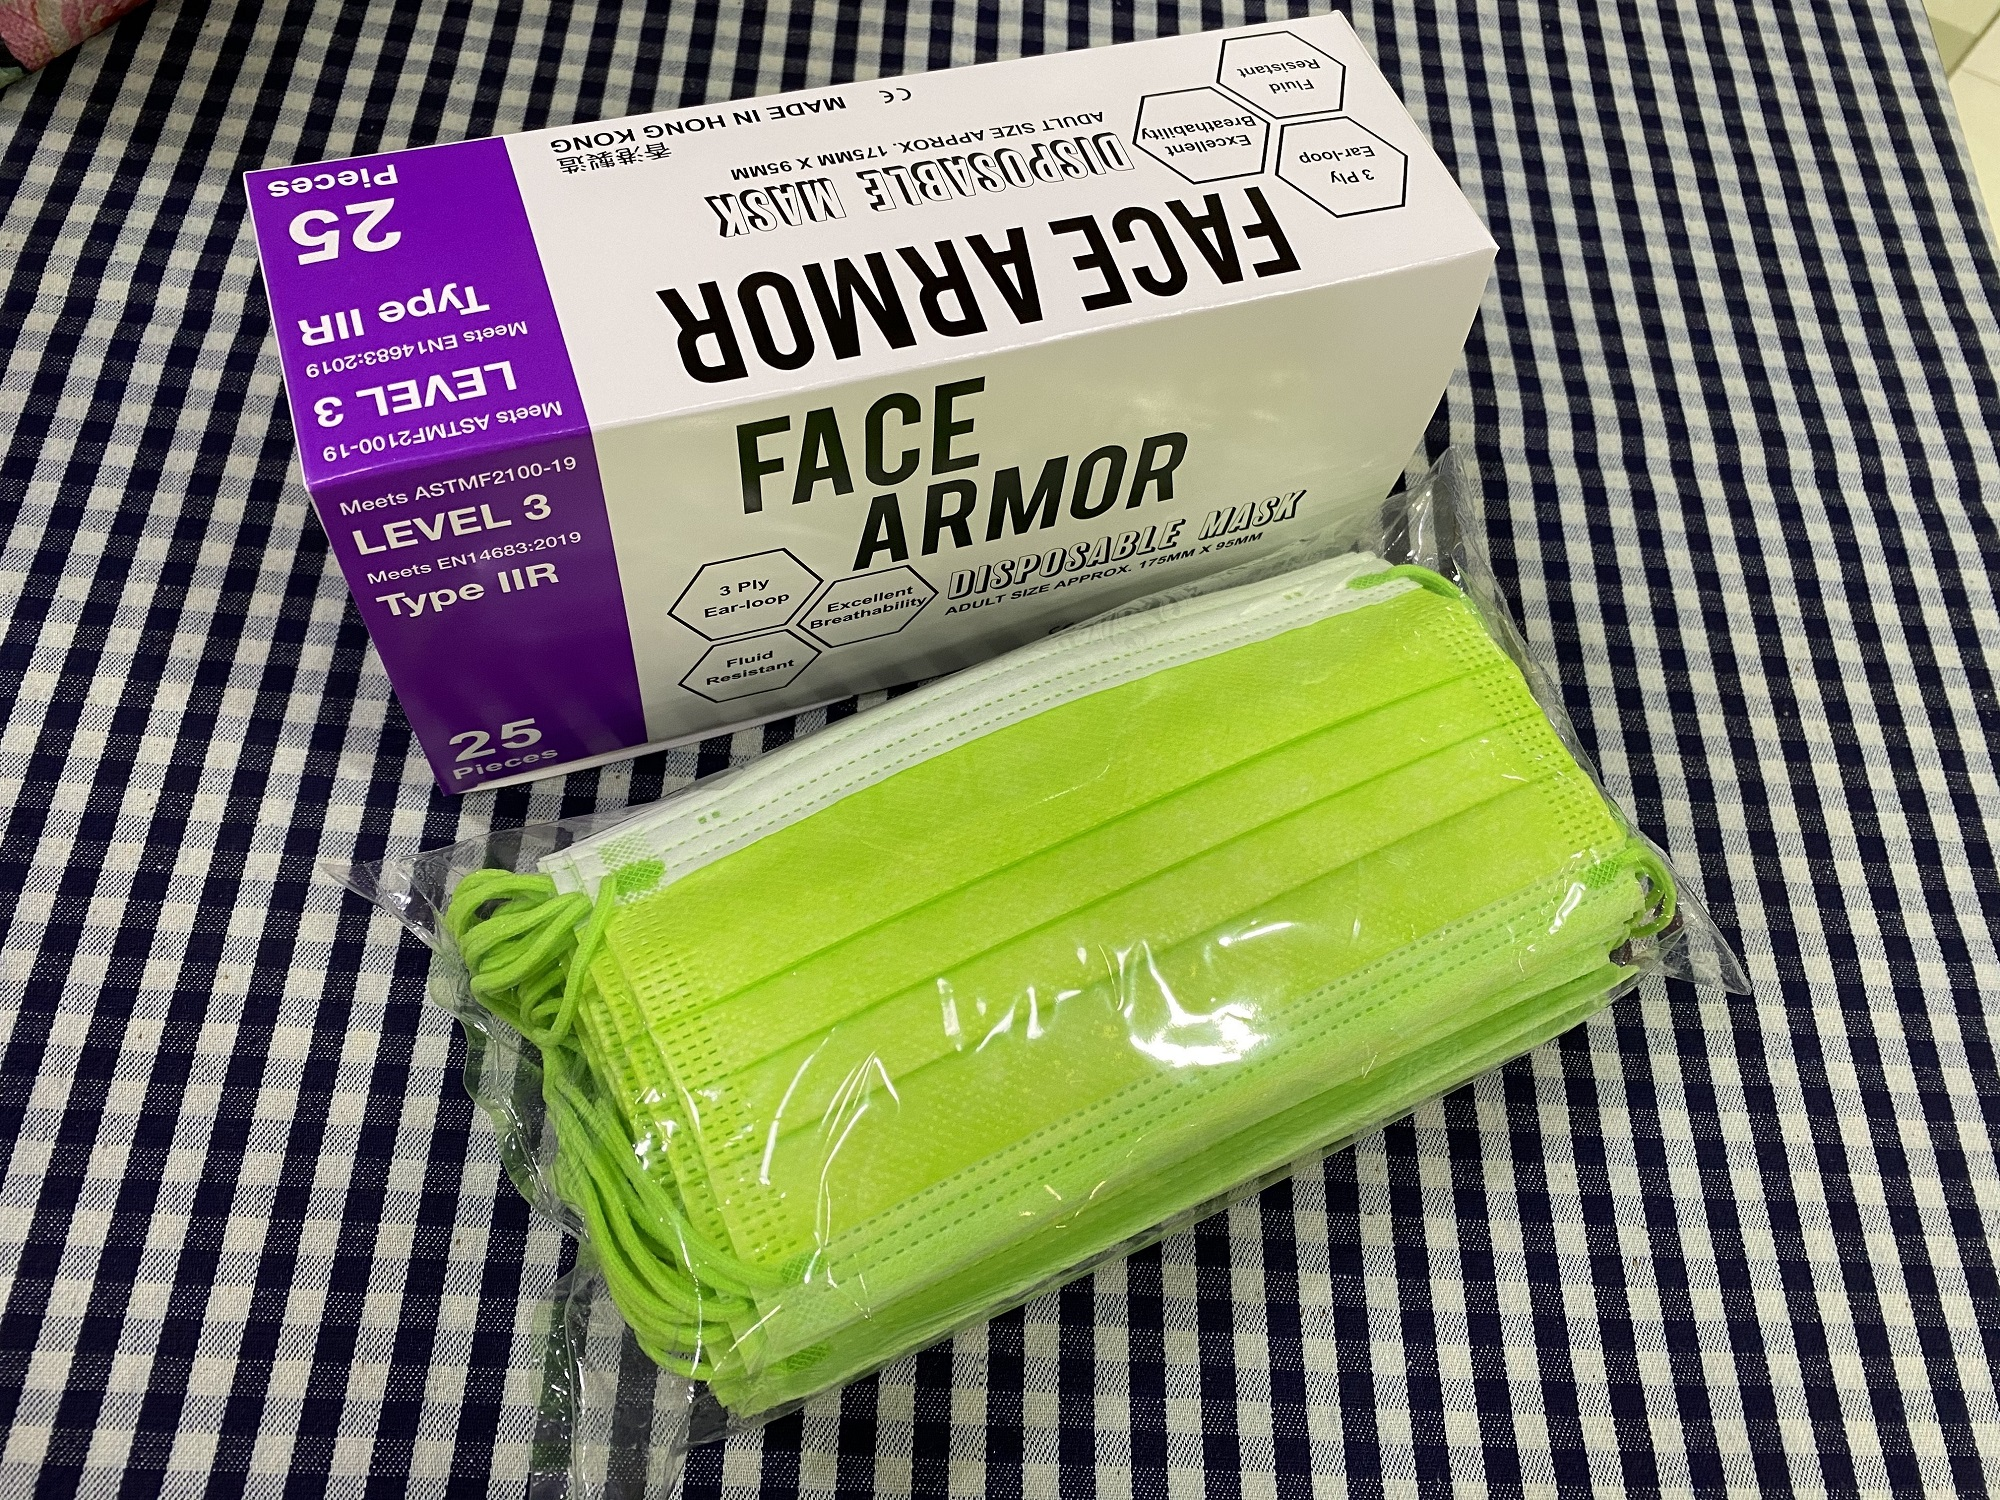 Face Armor Disposable Masks | ASTM LEVEL 3 | Made in Hong Kong| 25 PIECES | GREEN W/ GREEN EARLOOP